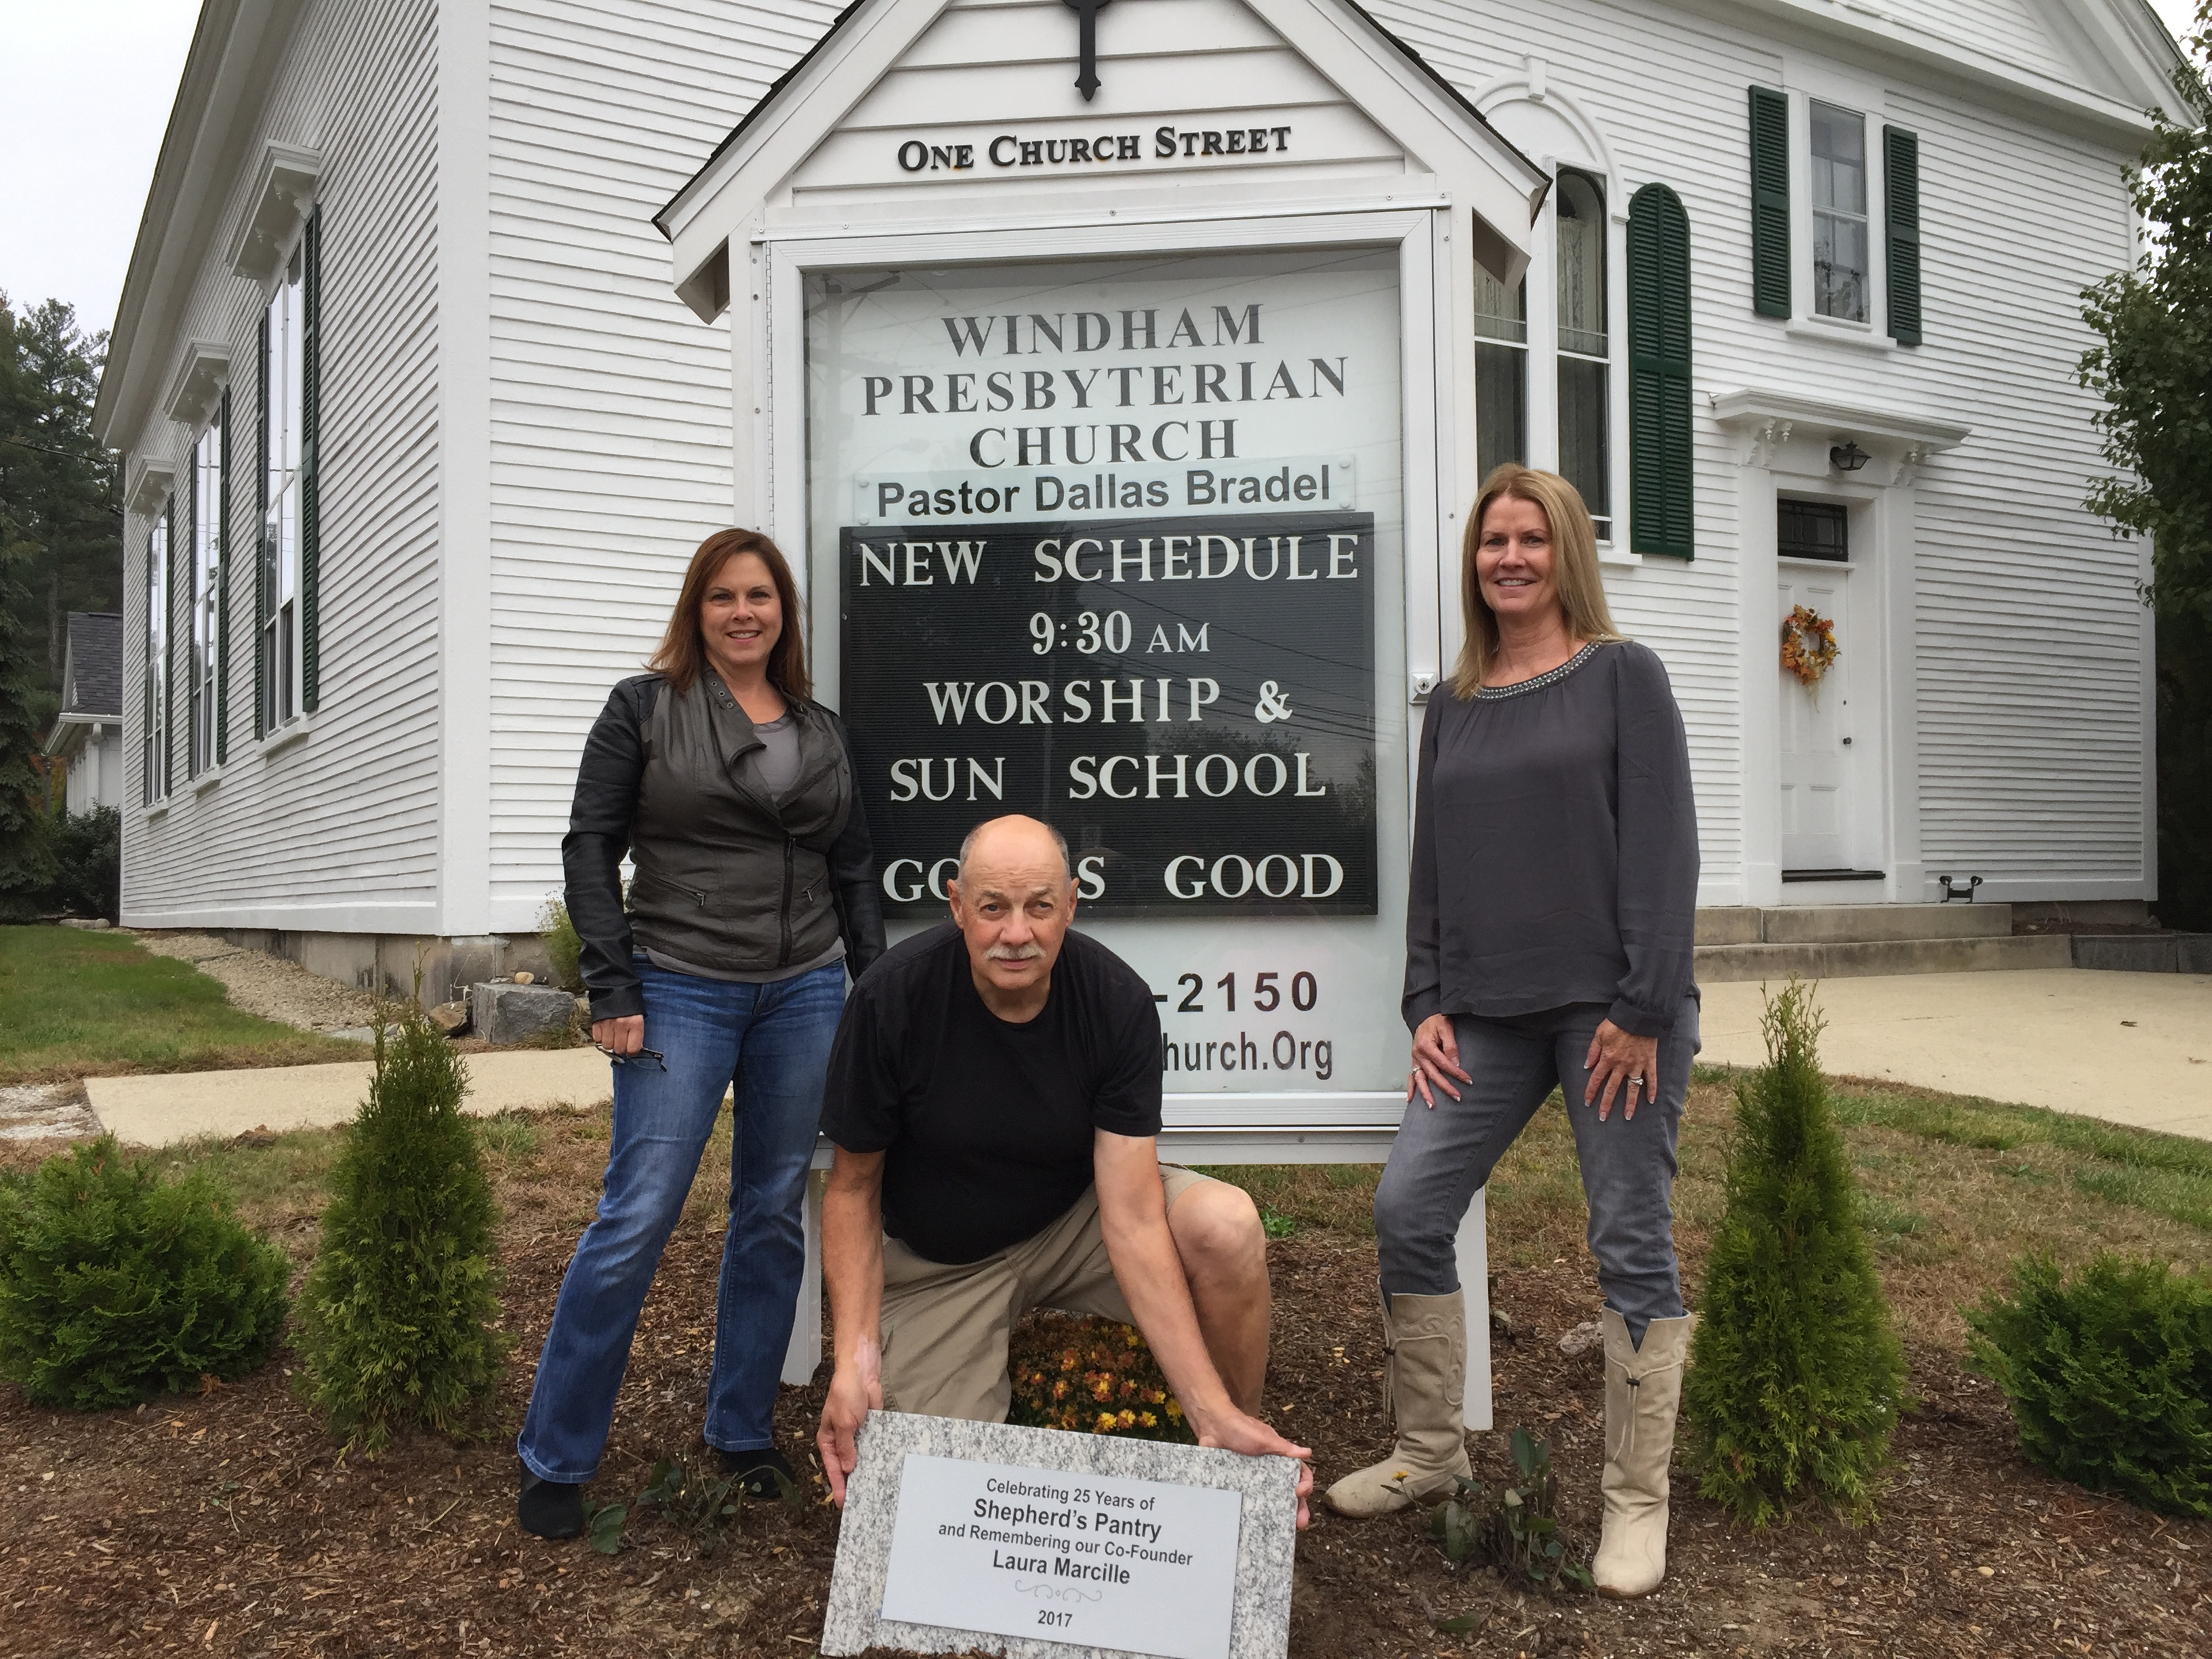 <b>Shrub dedication at Windham Presbyterian Church</b>                 <p>                     L-R: Debbie MacKenzie (Shepherd's Pantry Board &amp; Windham Presbyterian,) Rich Parow (Shepherd's                     Pantry Volunteer,) Laurie Johnson (Shepherd's Pantry President.)                 </p>